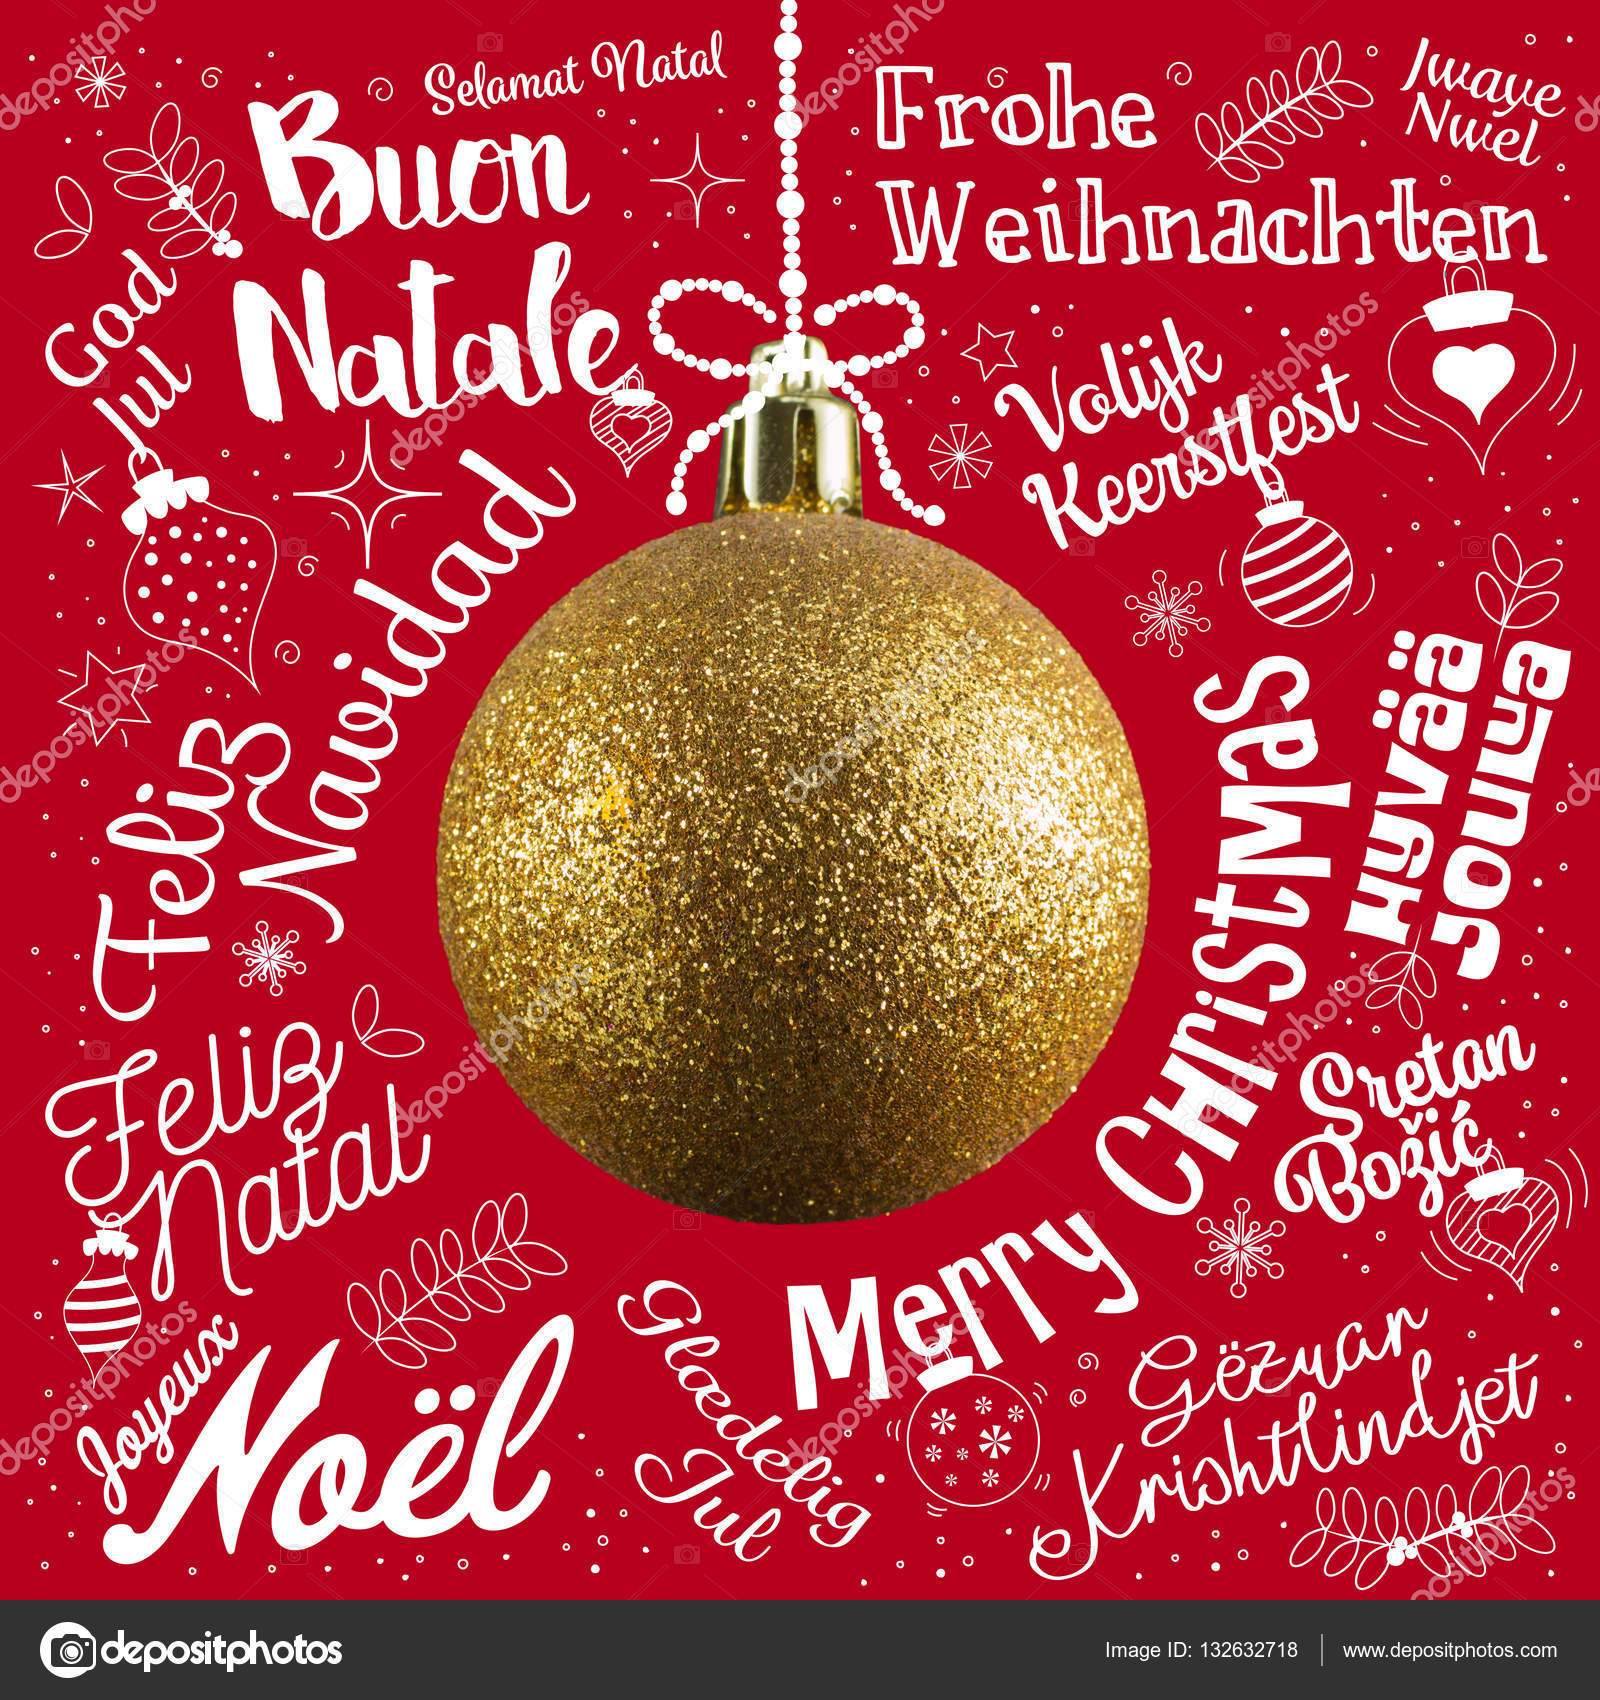 Merry Christmas In Different Languages.Merry Christmas Greetings Card From World In Different